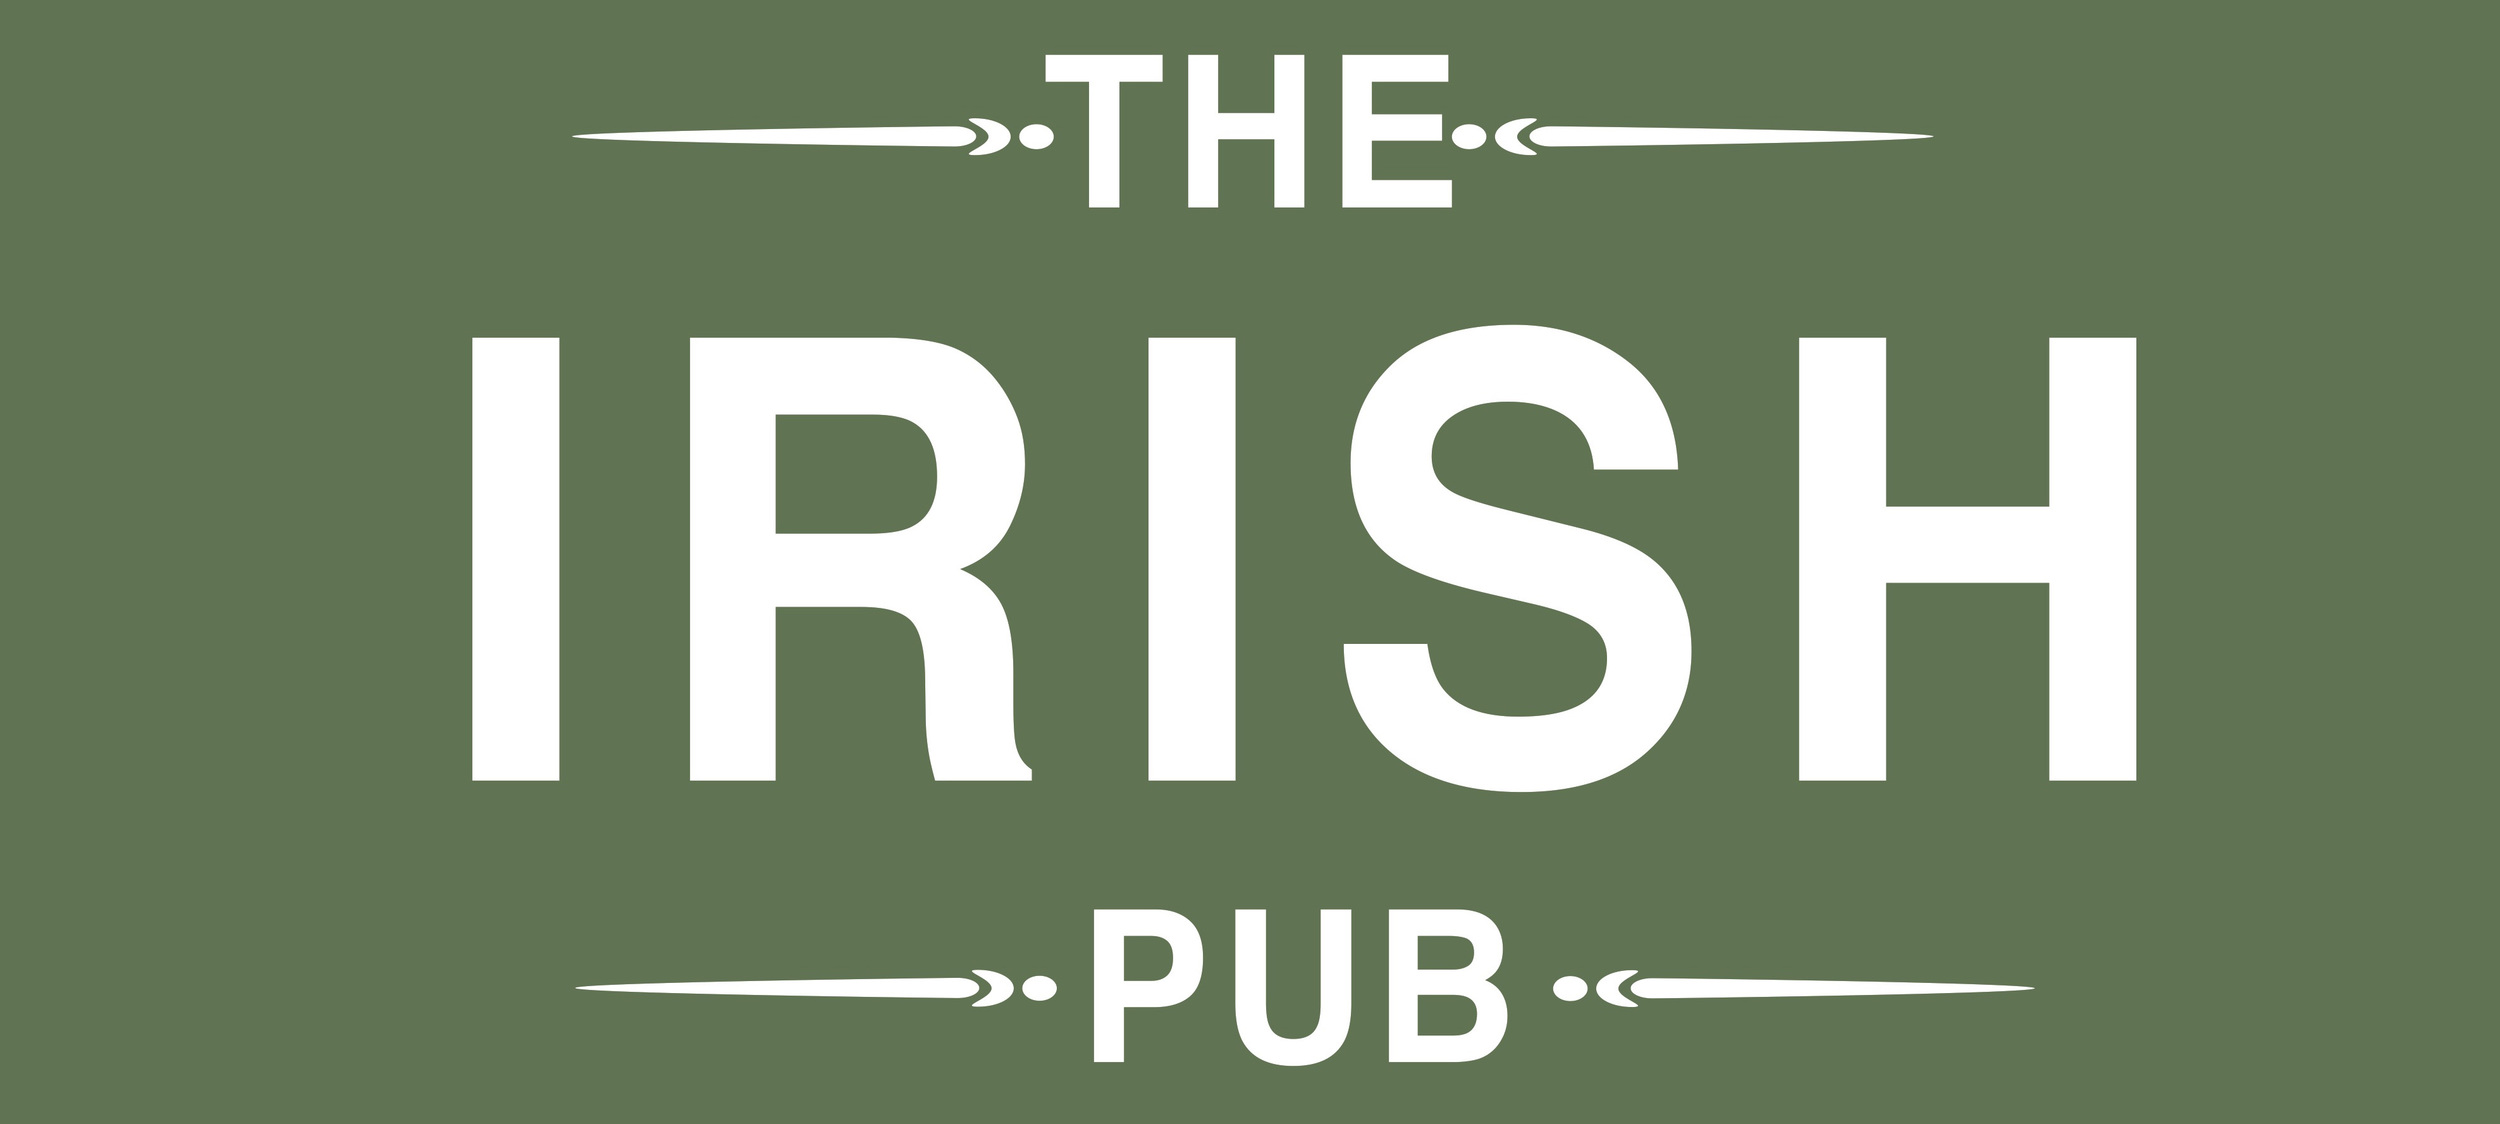 THE IRISH PUB is available for all territories except UK & Ireland